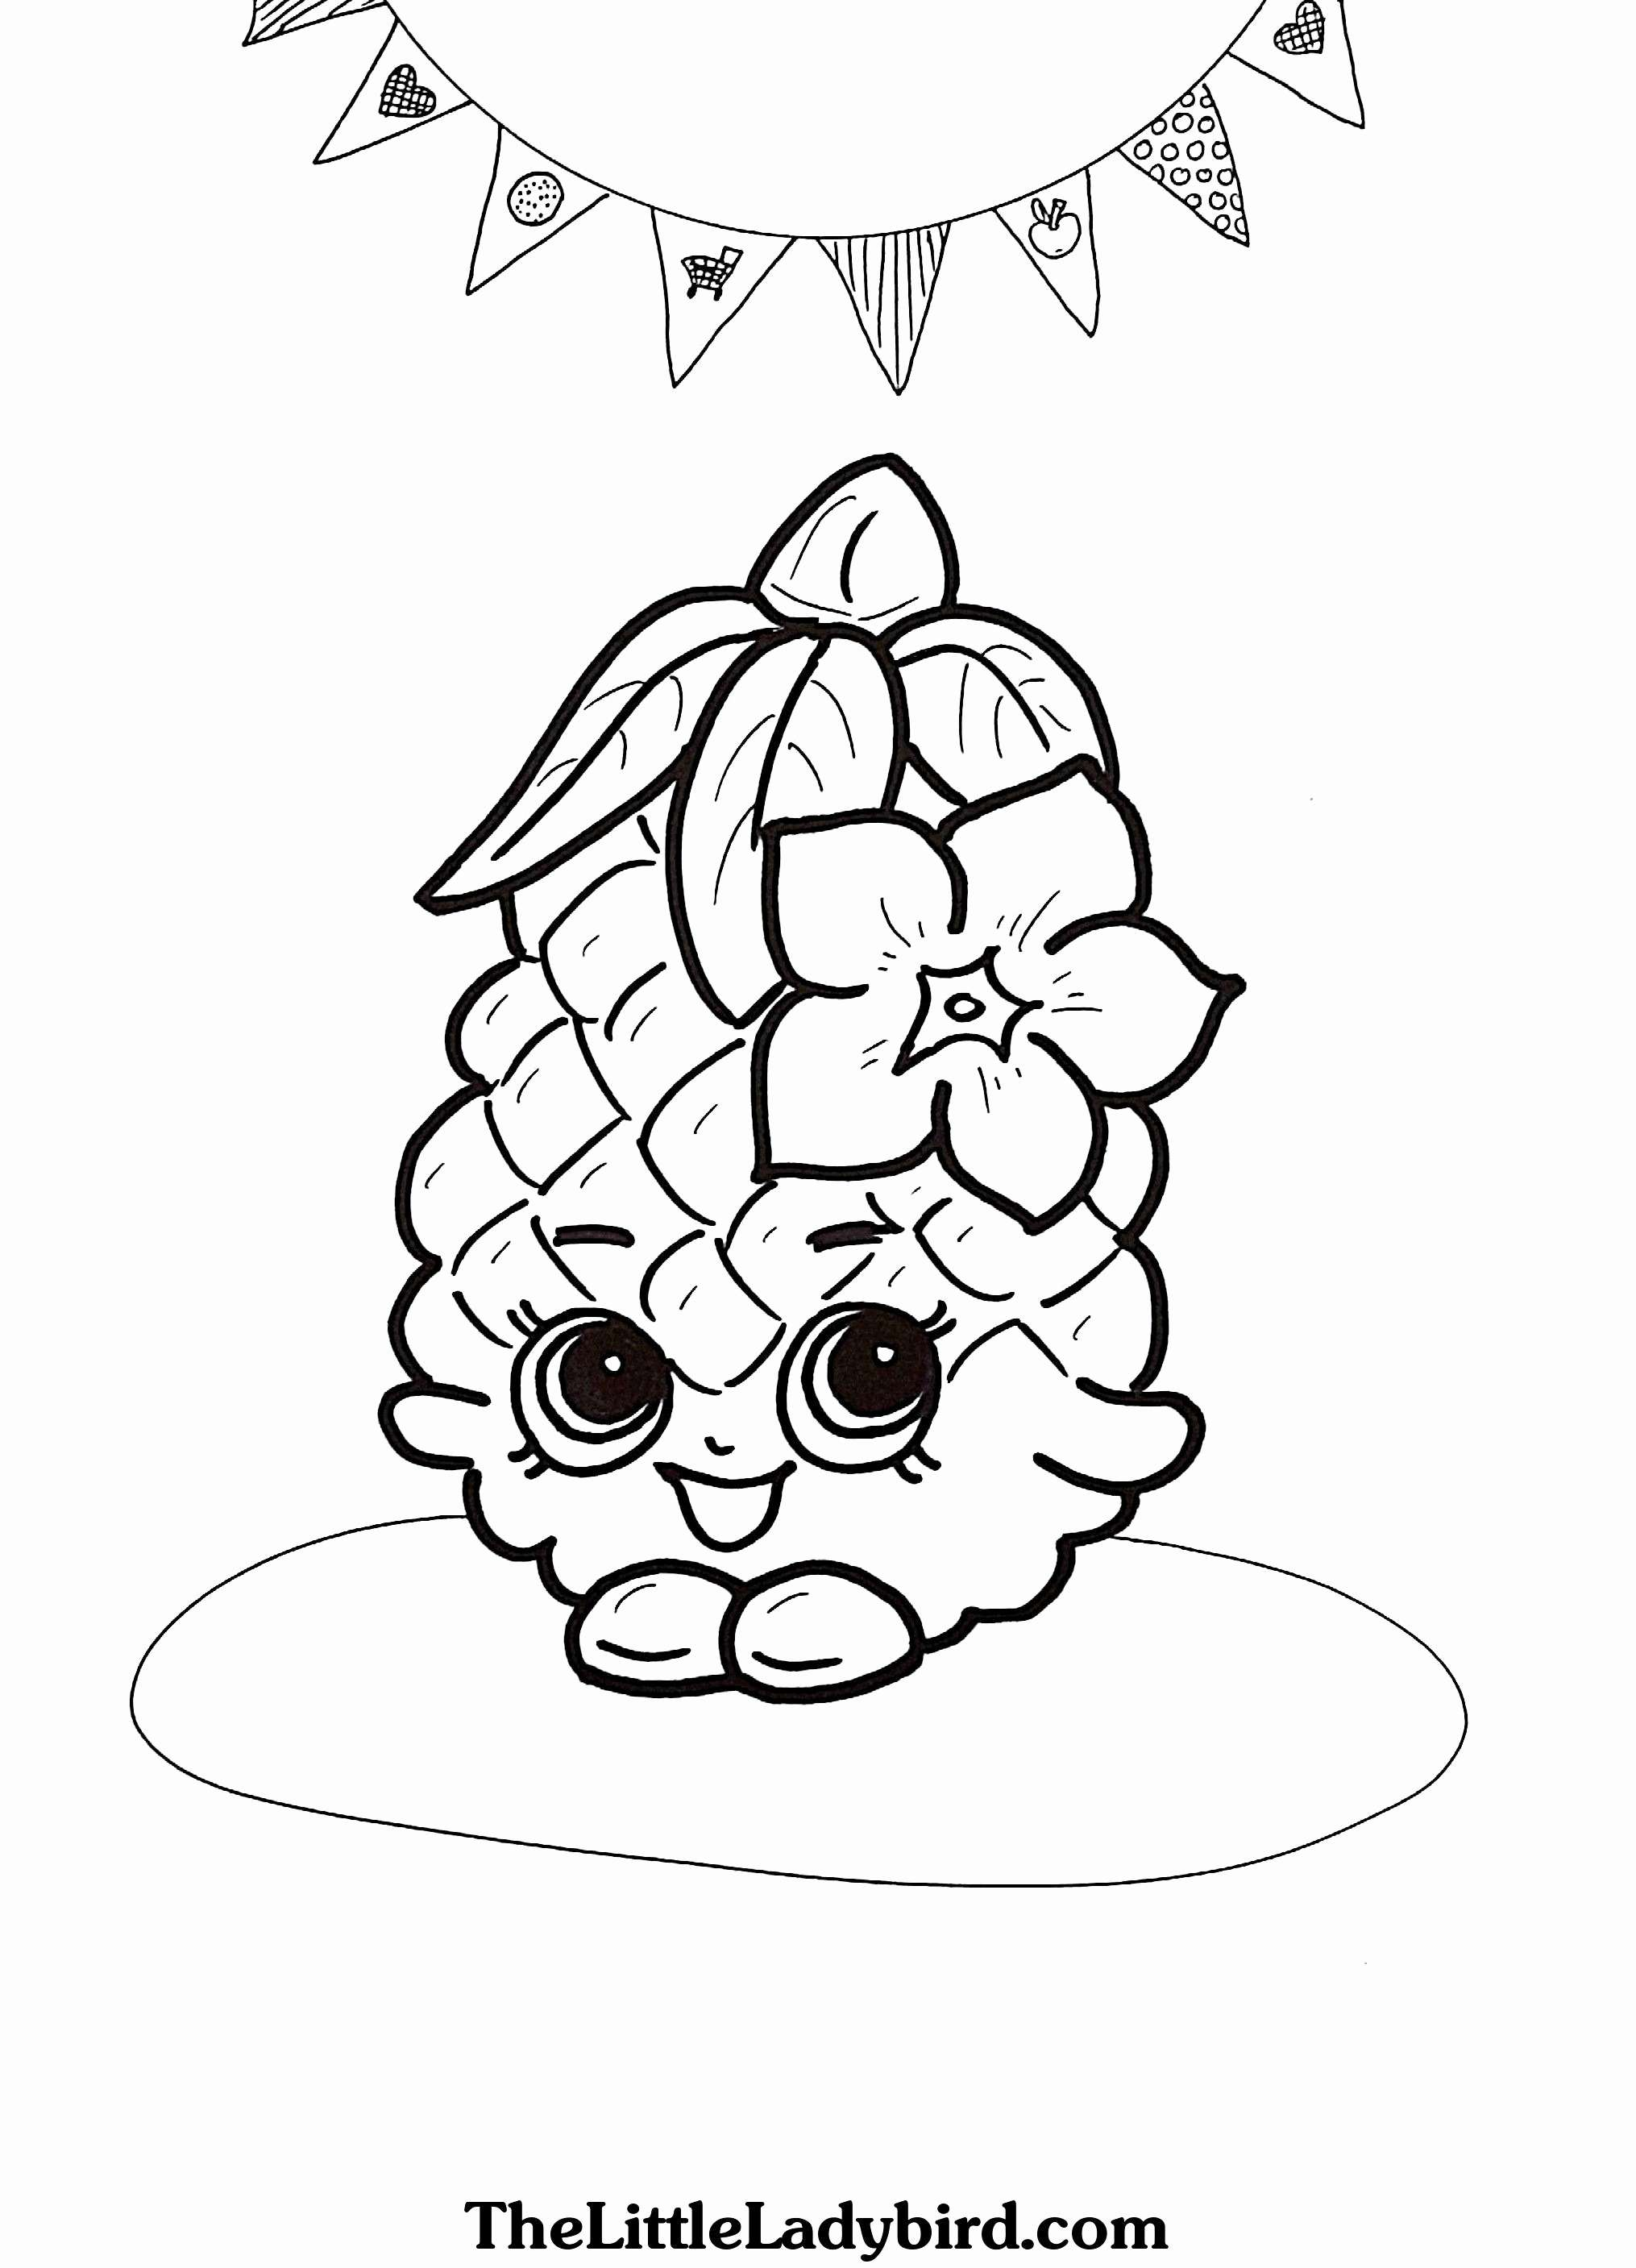 Christmas Coloring Pages For Second Graders With Free 2nd Grade Birthday